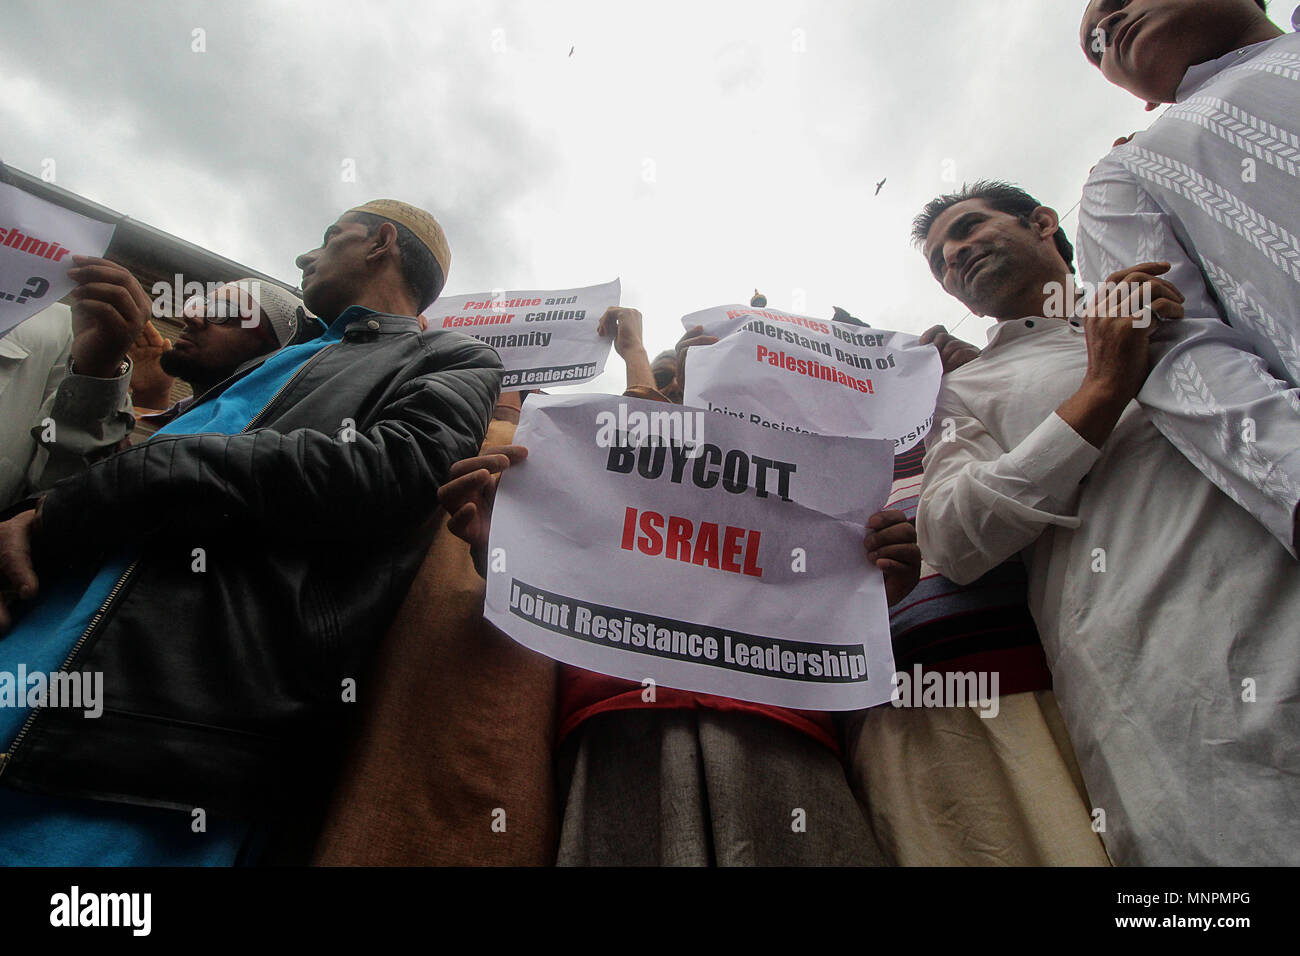 Activists and members of Joint Resistance Leadership (JRL) of Kashmir hold placards as they shout anti-Israel slogans during the protest in Srinagar the summer capital of Indian controlled Kashmir on May 18, 2018. More than 60 Palestinian protesters have been killed after Israeli forces opened fire on the Gaza border on May 14, who had assembled alongside the fence to protest against the moving of United State's embassy from Tel Aviv to Jerusalem. Credit: Faisal Khan/Pacific Press/Alamy Live News - Stock Image